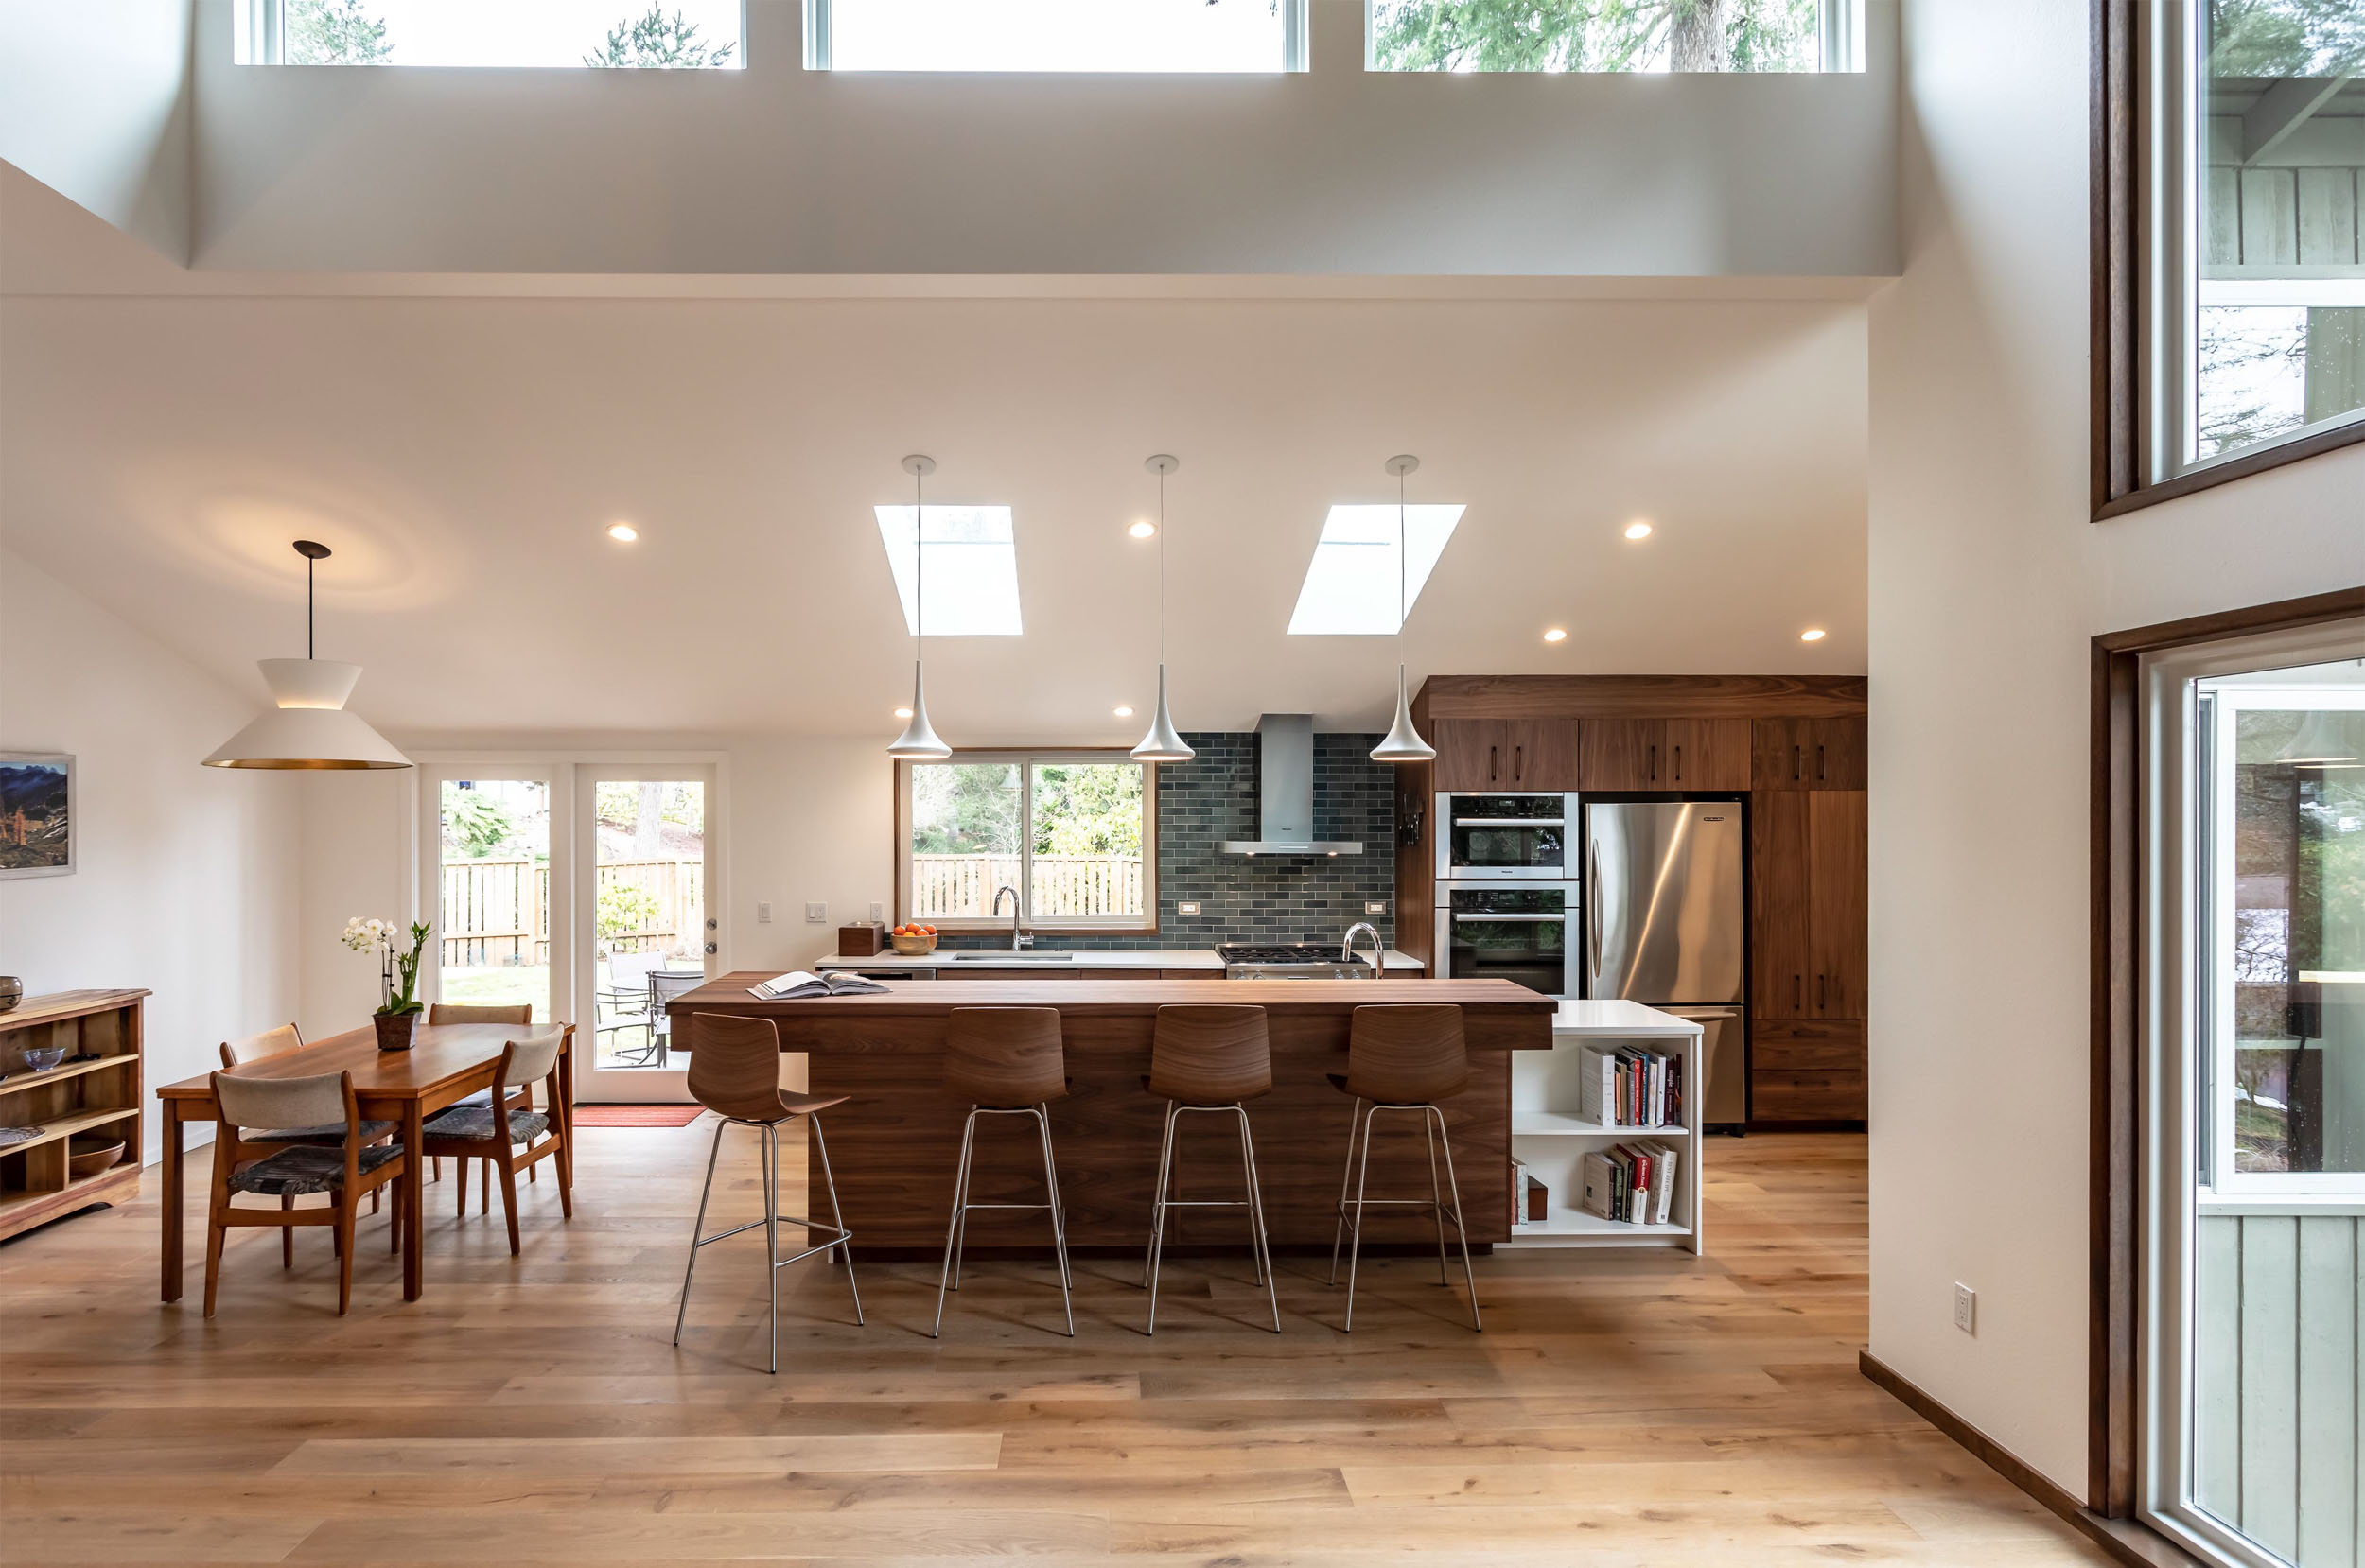 Skylights and clerestory windows flood the kitchen with natural light